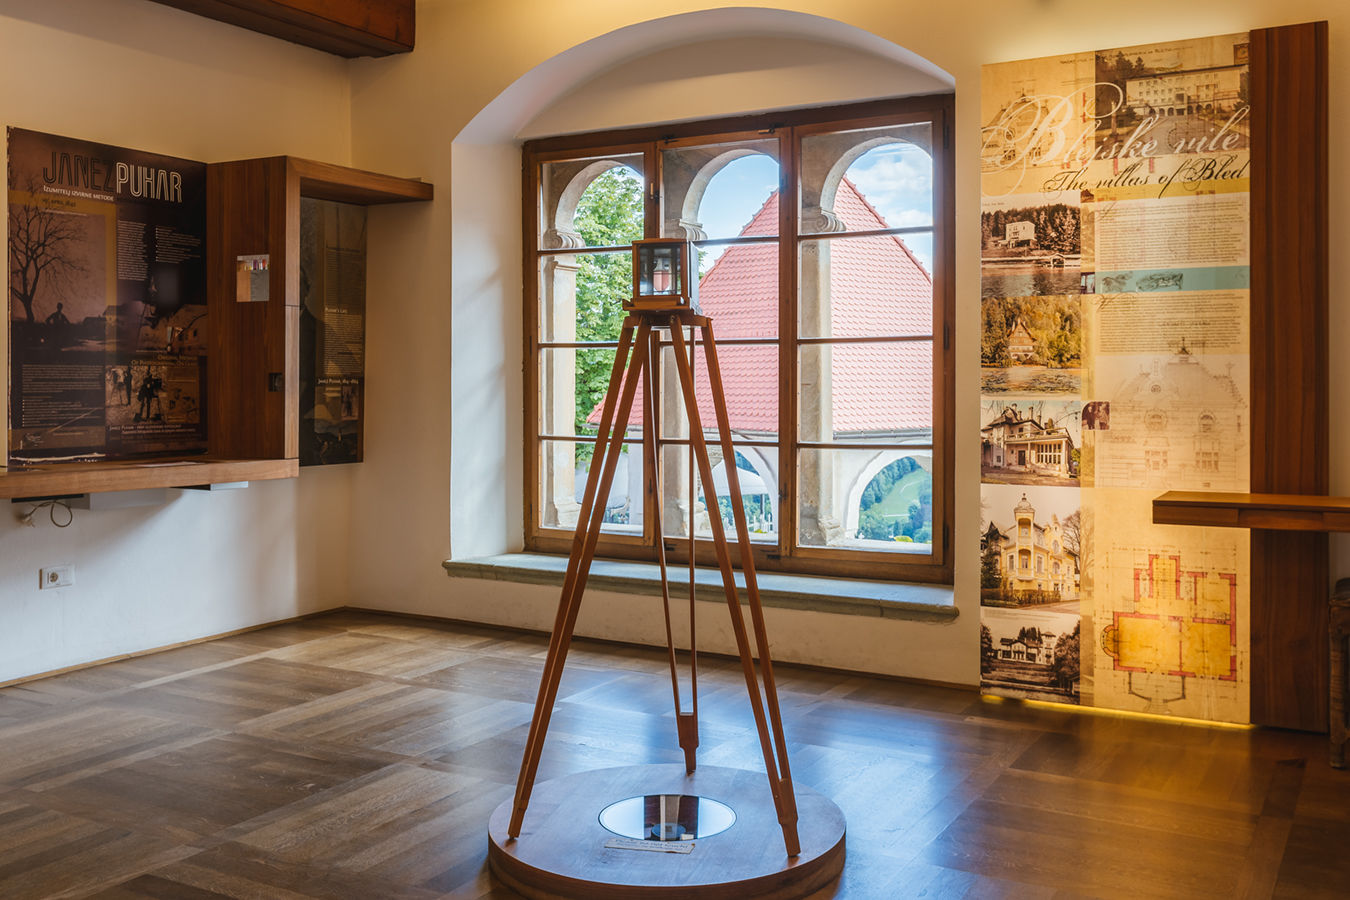 16. Museum - room 6: images of Bled and famous villas